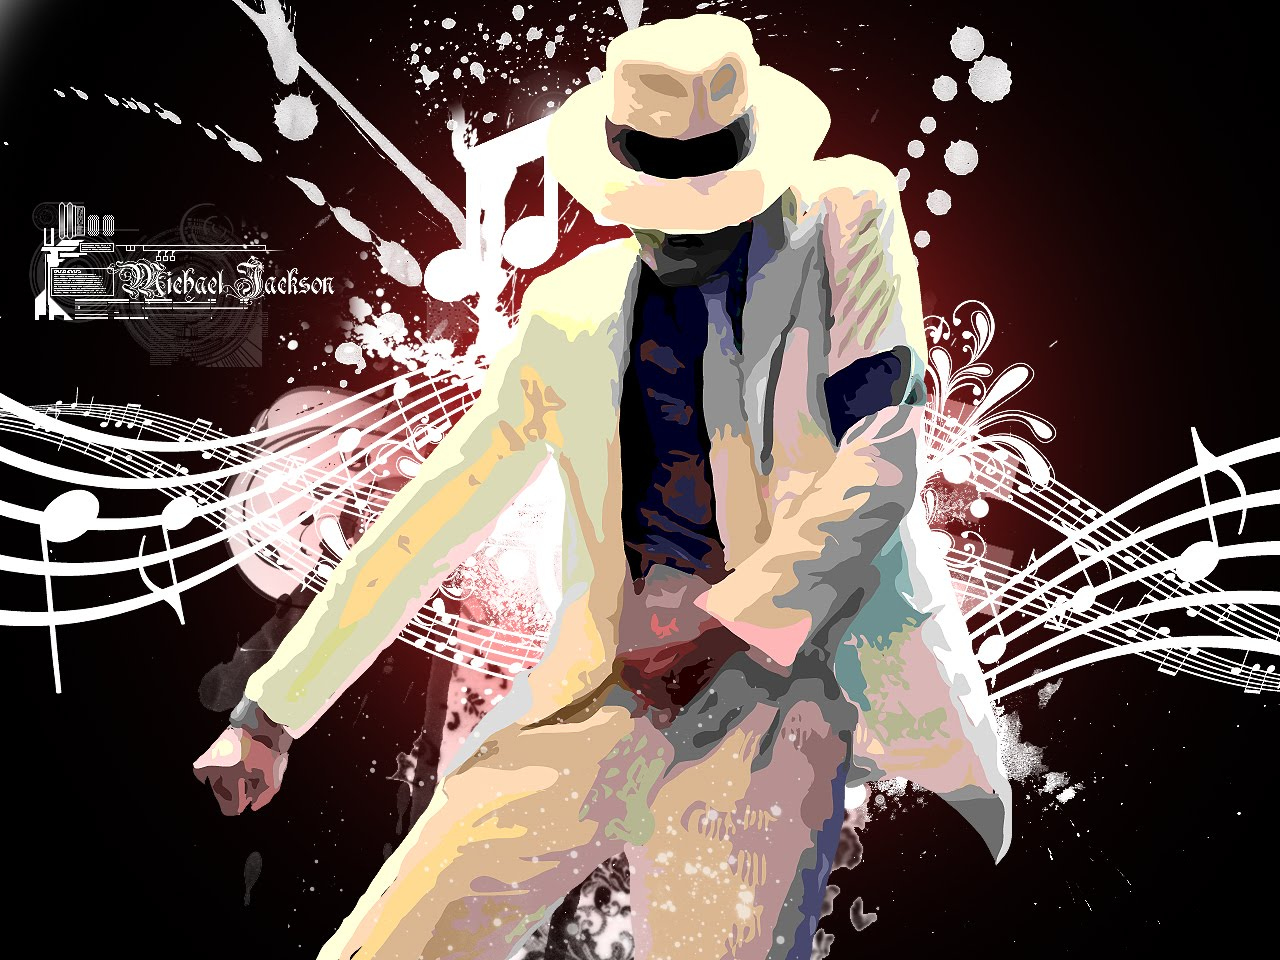 http://4.bp.blogspot.com/_zYWsre-NqhA/SxQCiek0c3I/AAAAAAAACDA/iOCaix2Rb6w/s1600/Michael_Jackson_Wallpaper_by_Killopower1.jpg